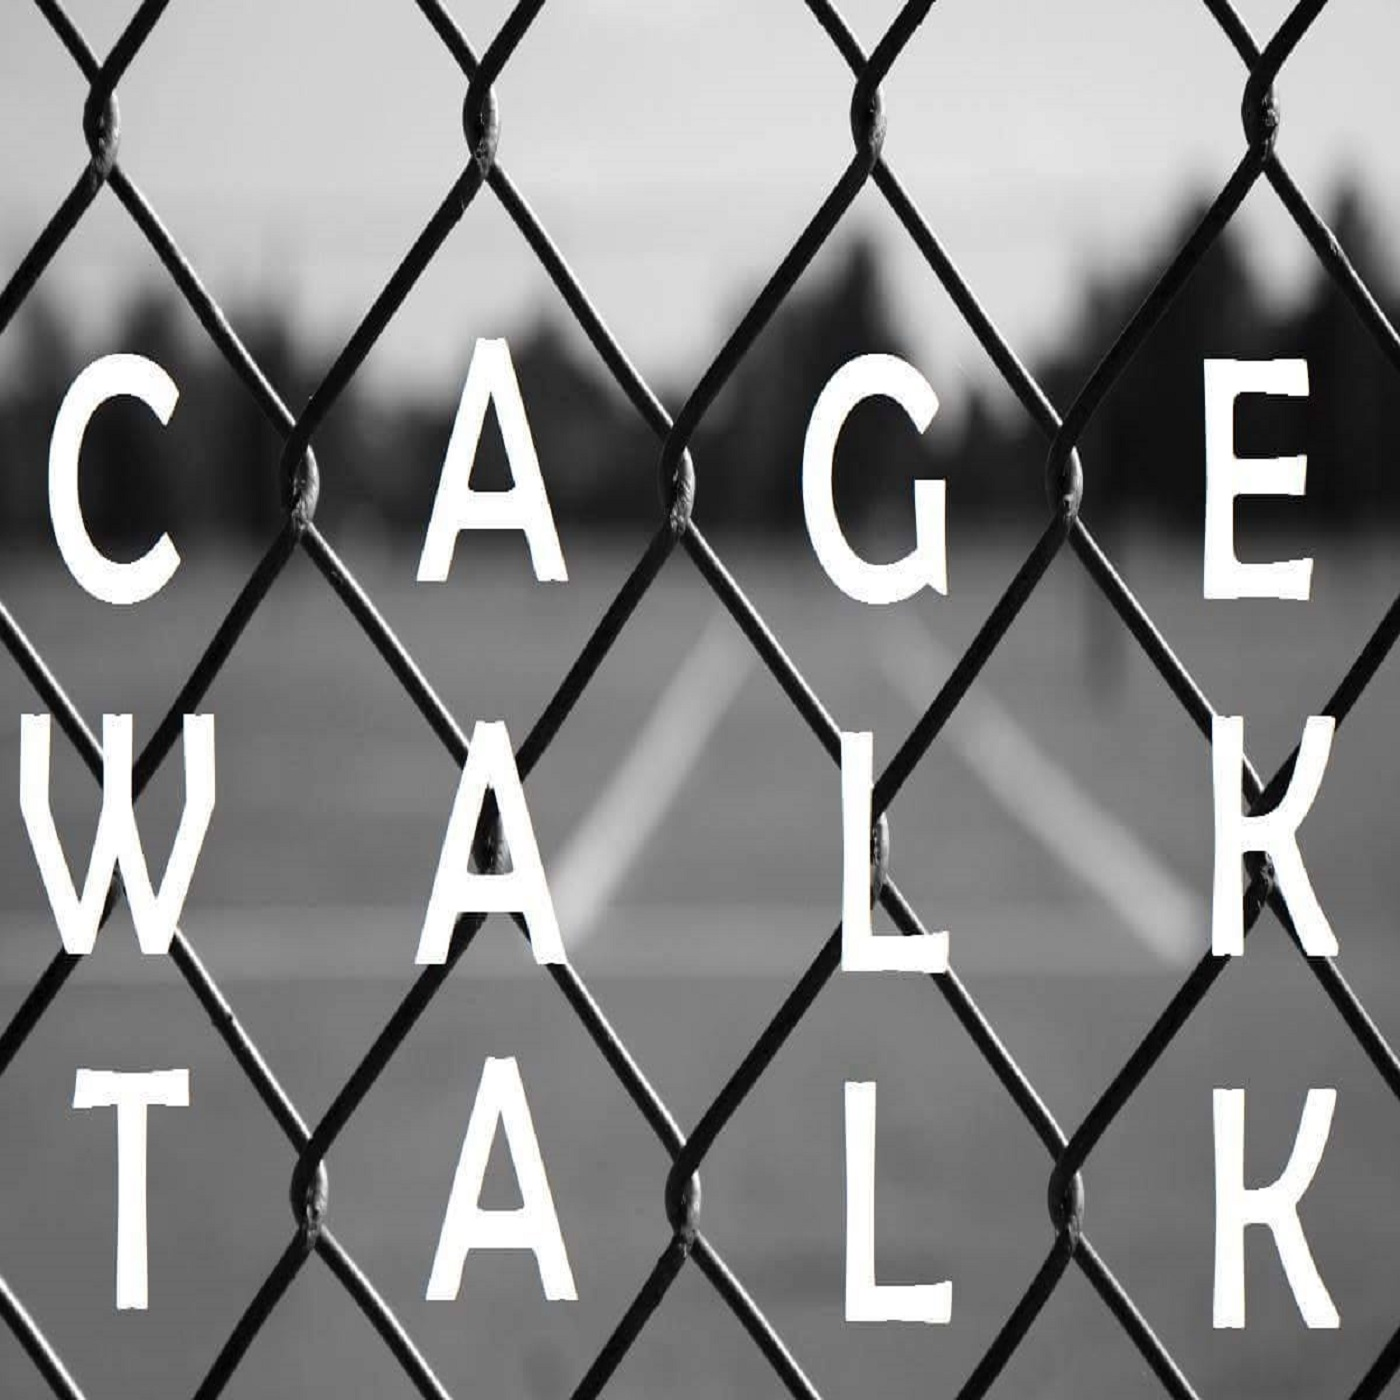 Cage Walk Talk - Scott  Umble